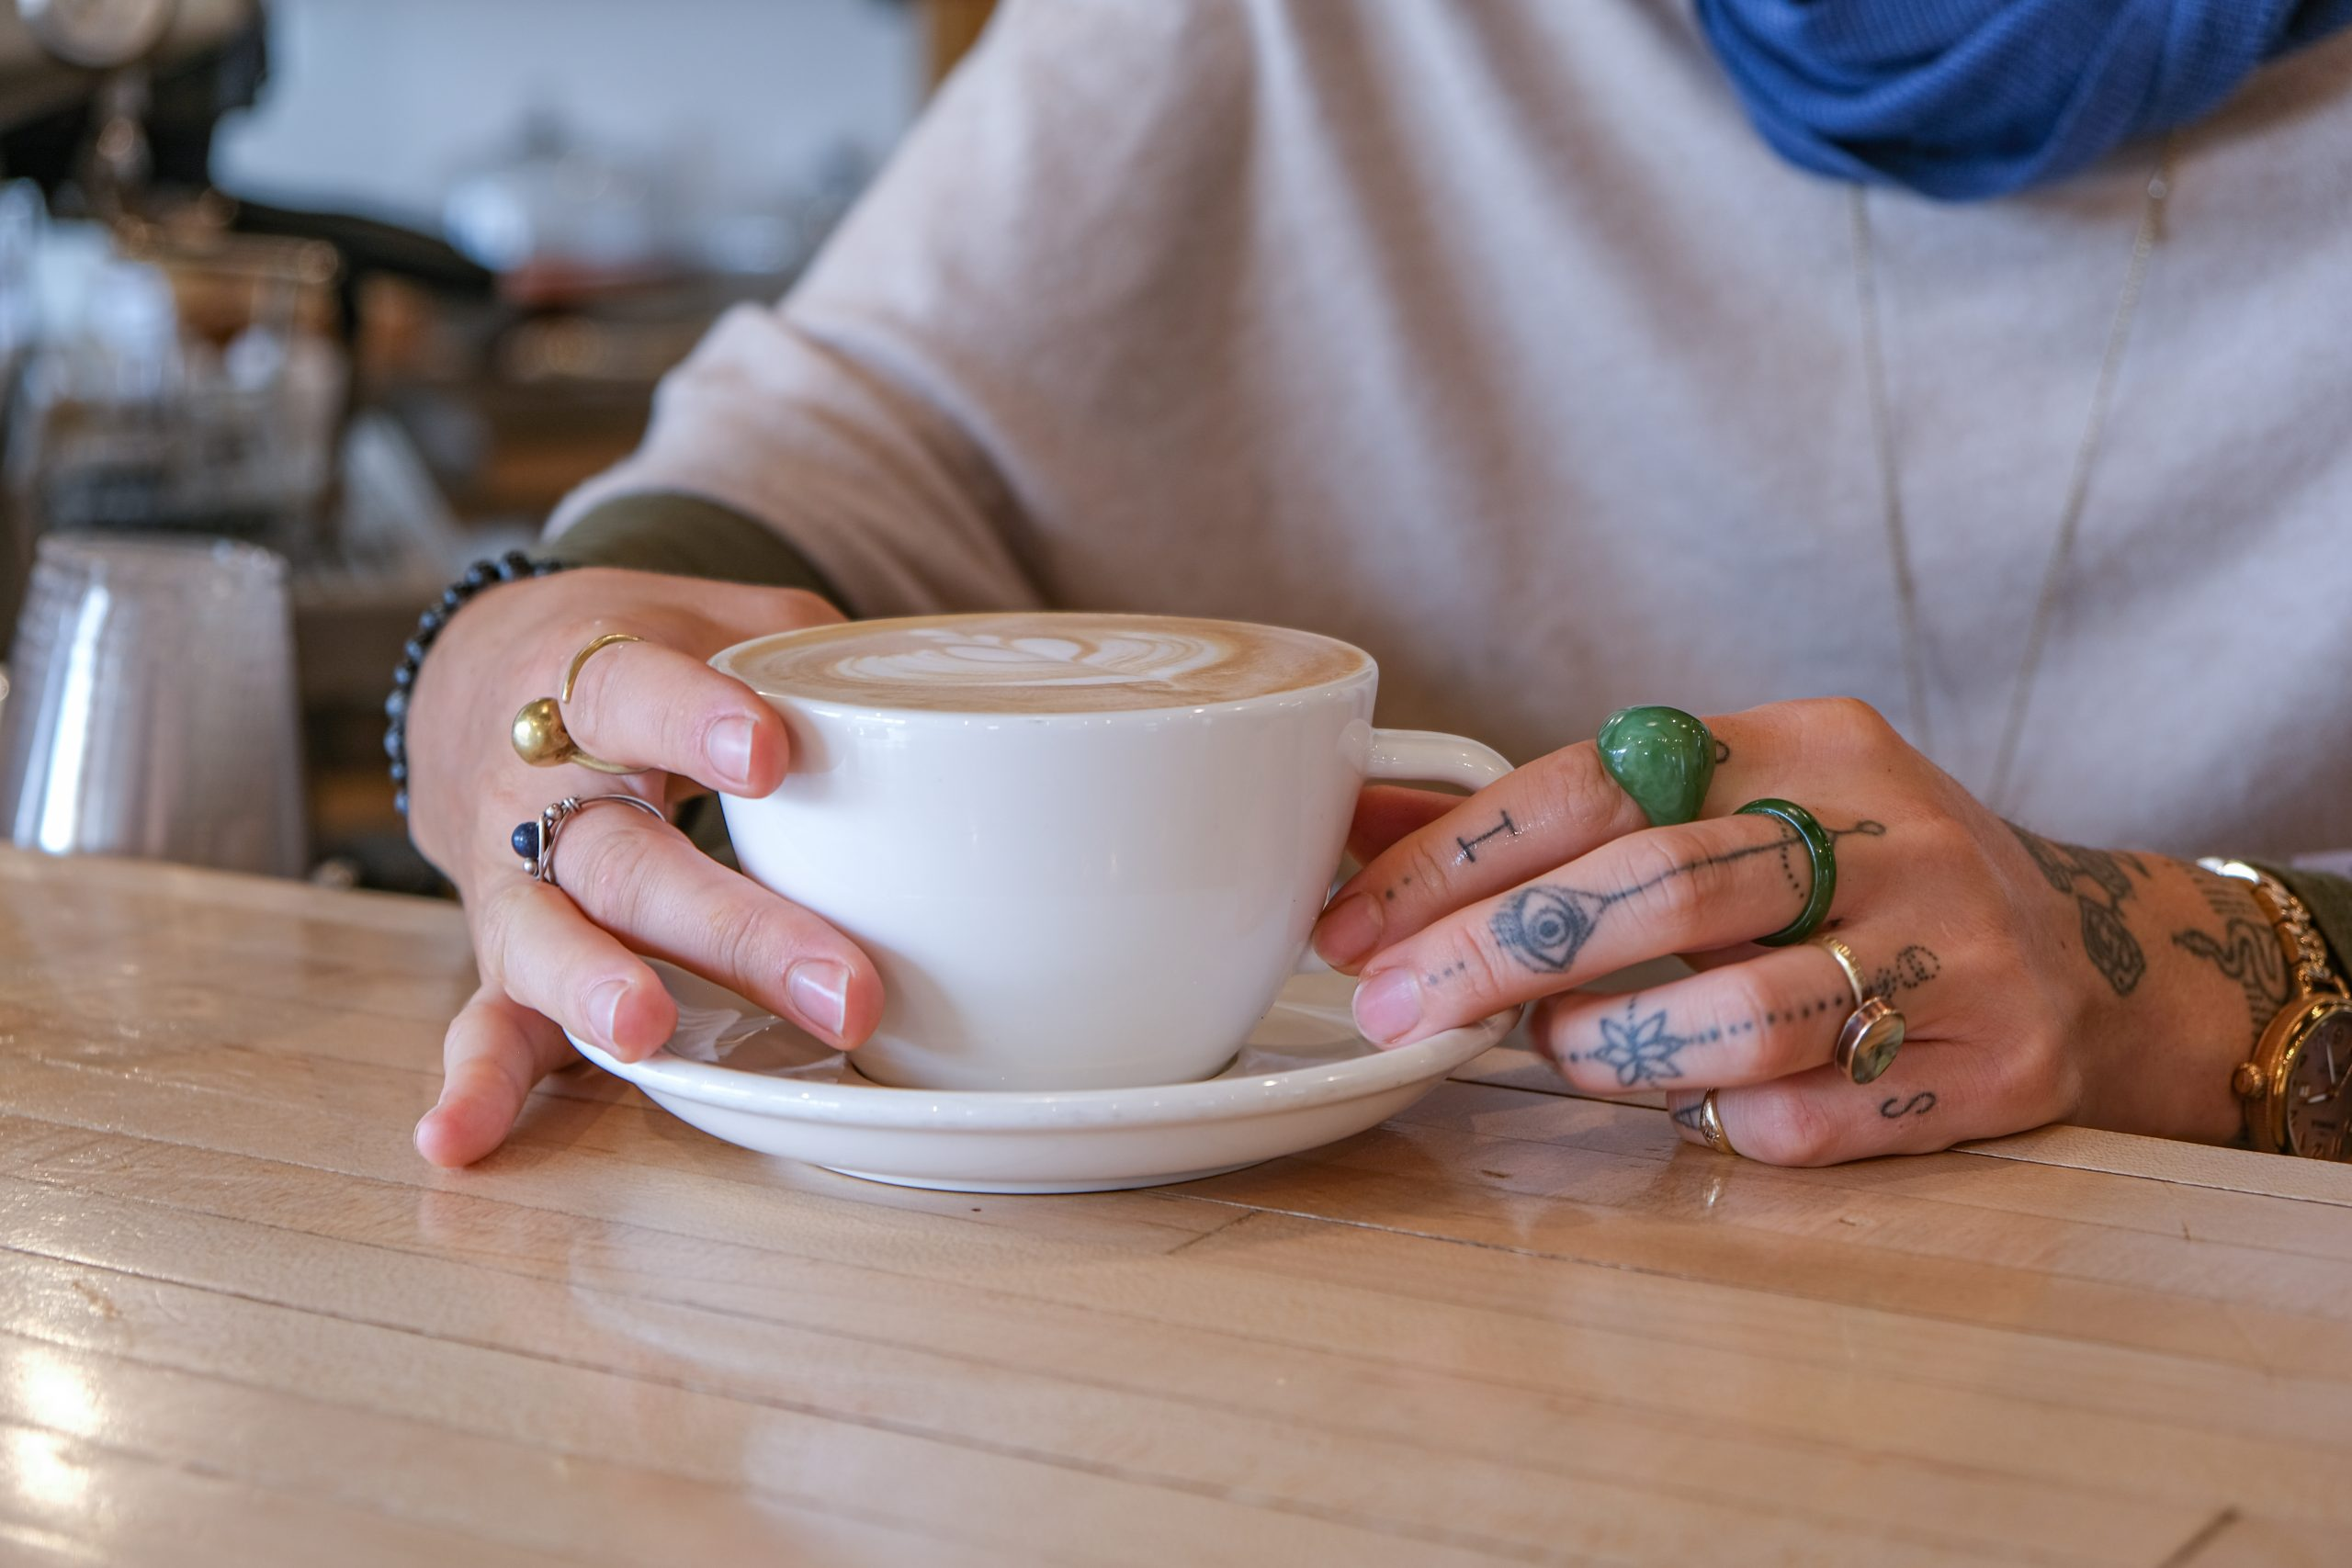 female hands with henna tatoos cradle cup of coffee